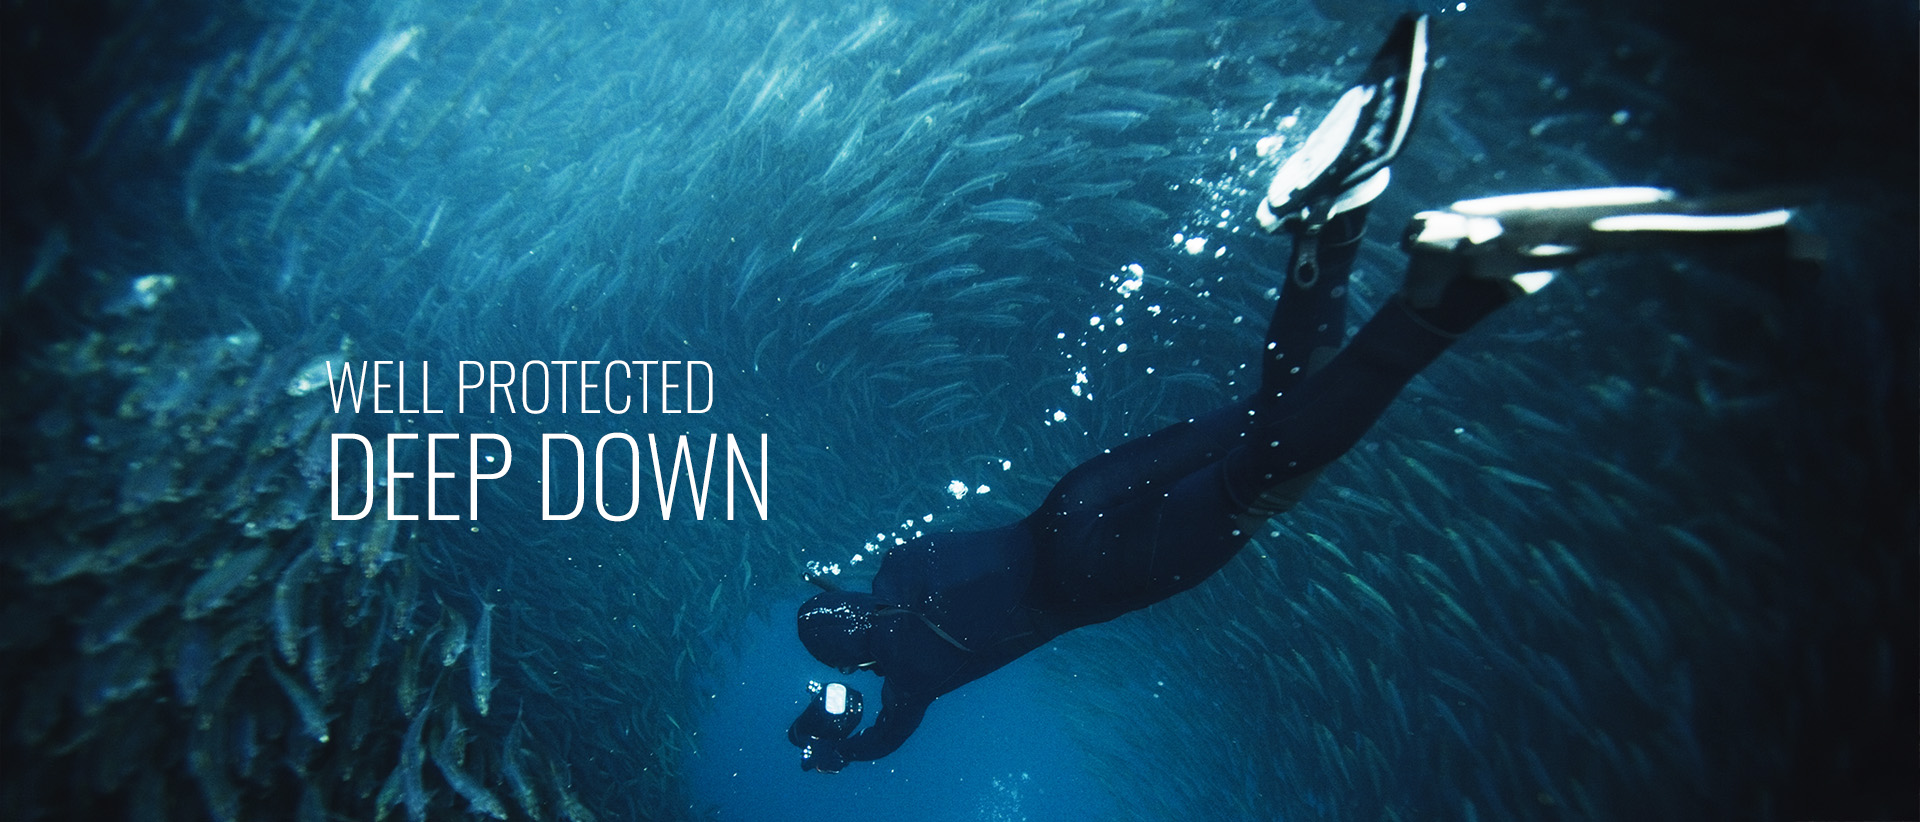 WELL PROTECTED-DEEP DOWN